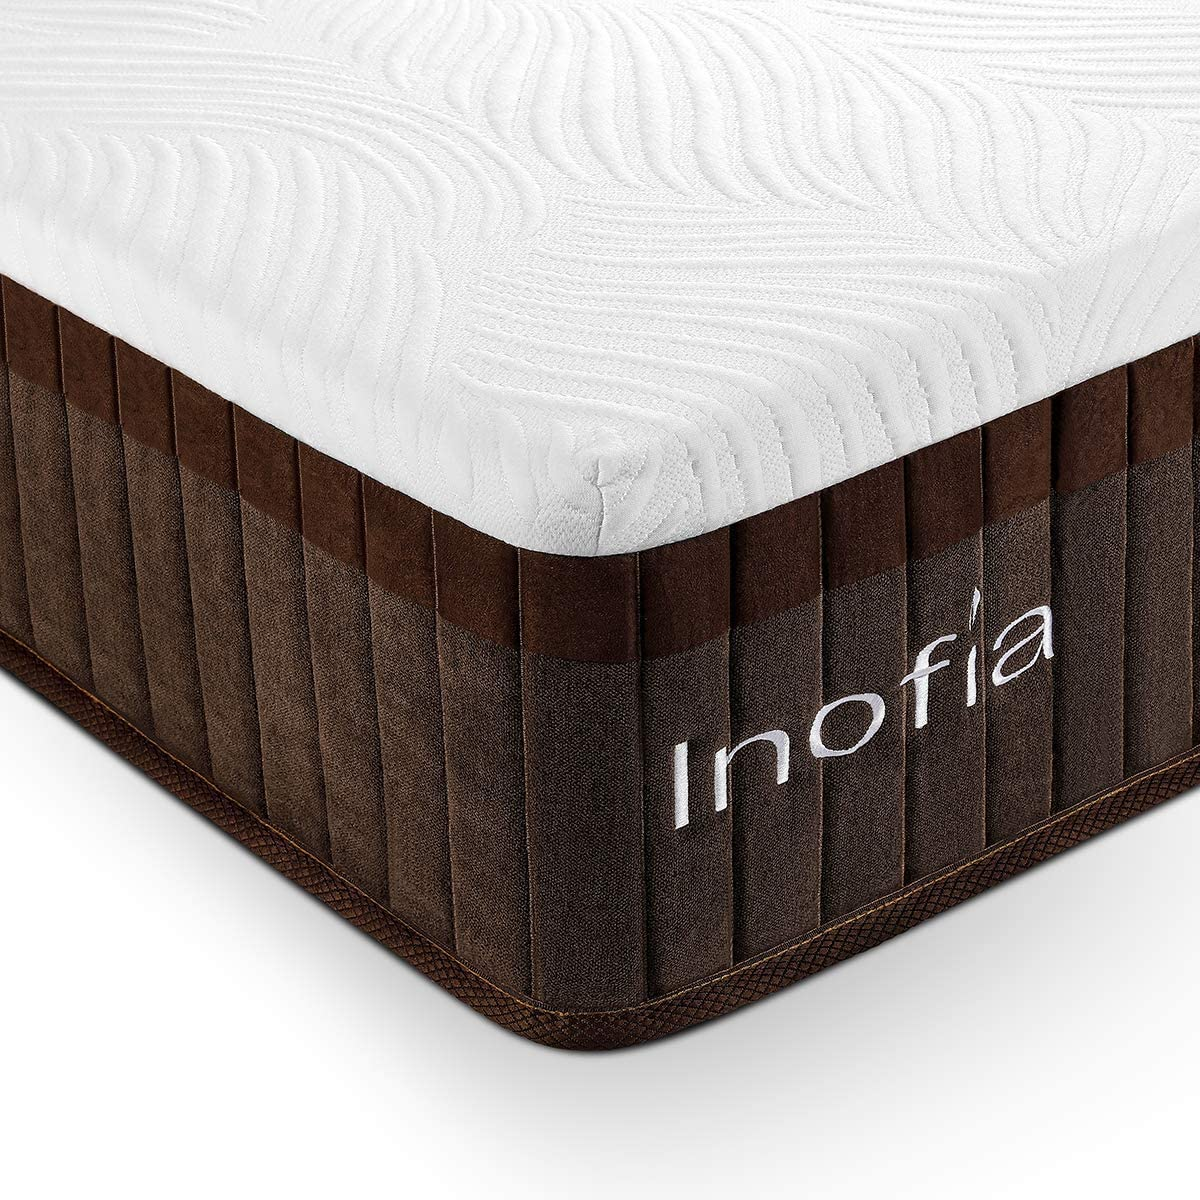 Inofia Full Mattress, Bed in a Box, Sleeps Cooler with More Pressure Relief Support Than Memory Foam, CertiPUR-US Certified, Medium Firm, 10 Year U.S. Warranty, Full Size, 11.4 Inches